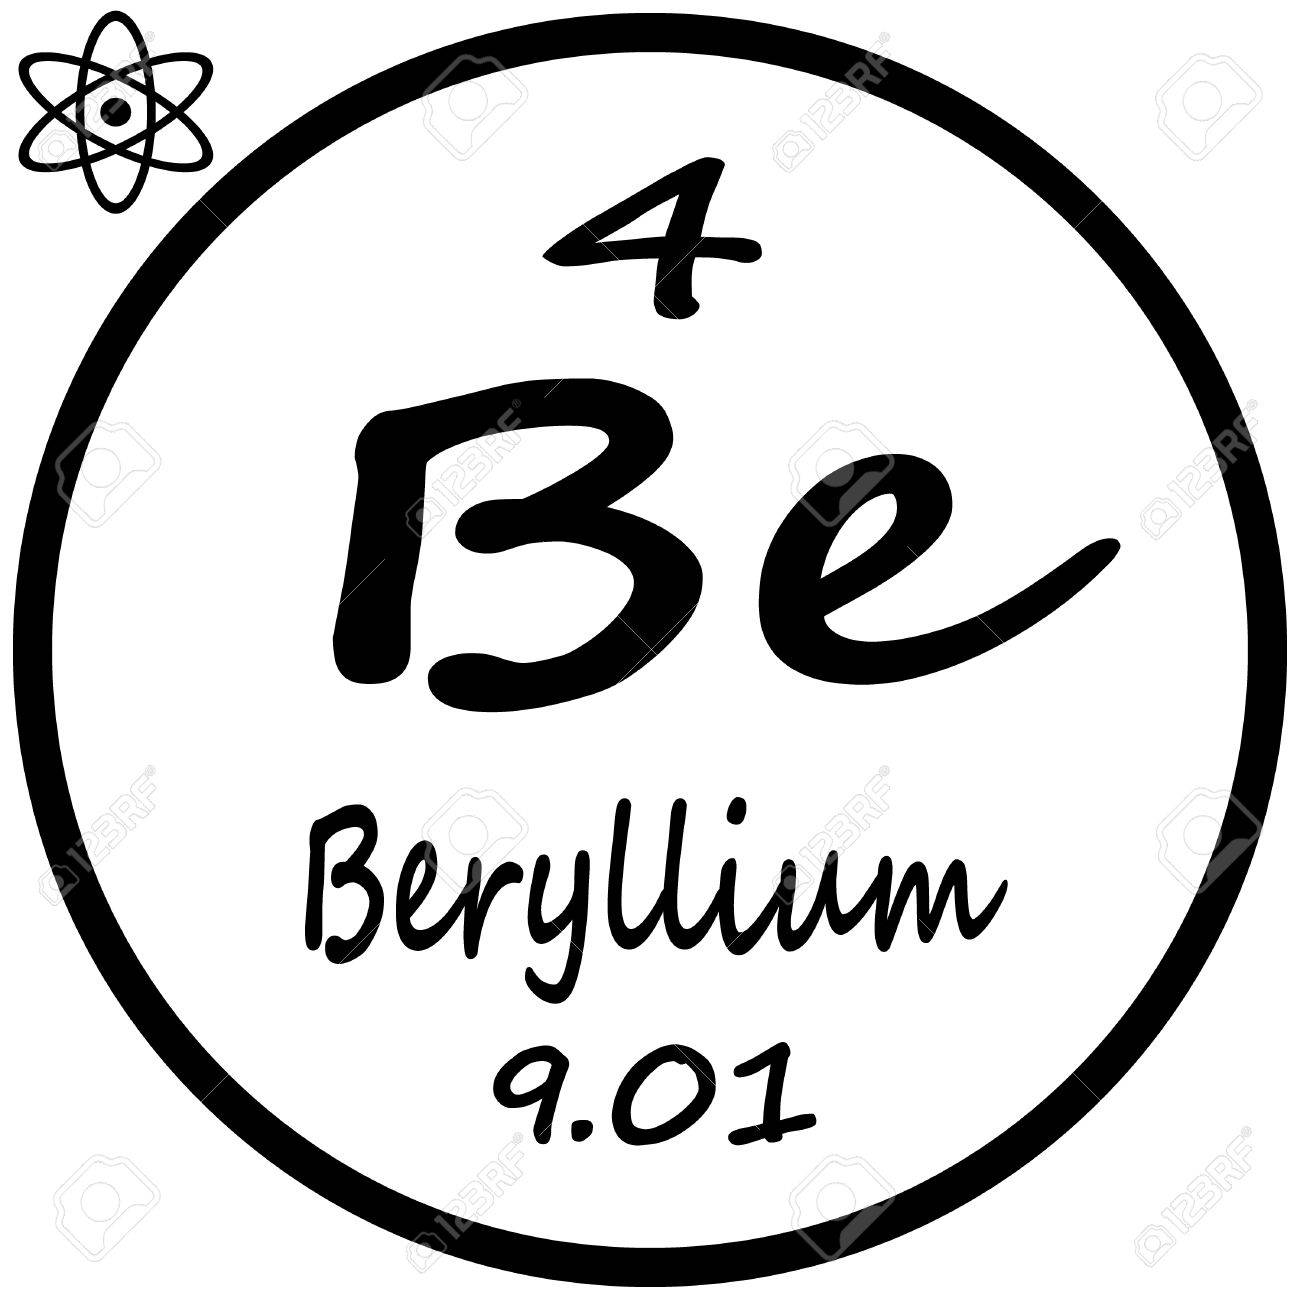 Periodic table of elements beryllium royalty free cliparts periodic table of elements beryllium stock vector 53482391 gamestrikefo Image collections